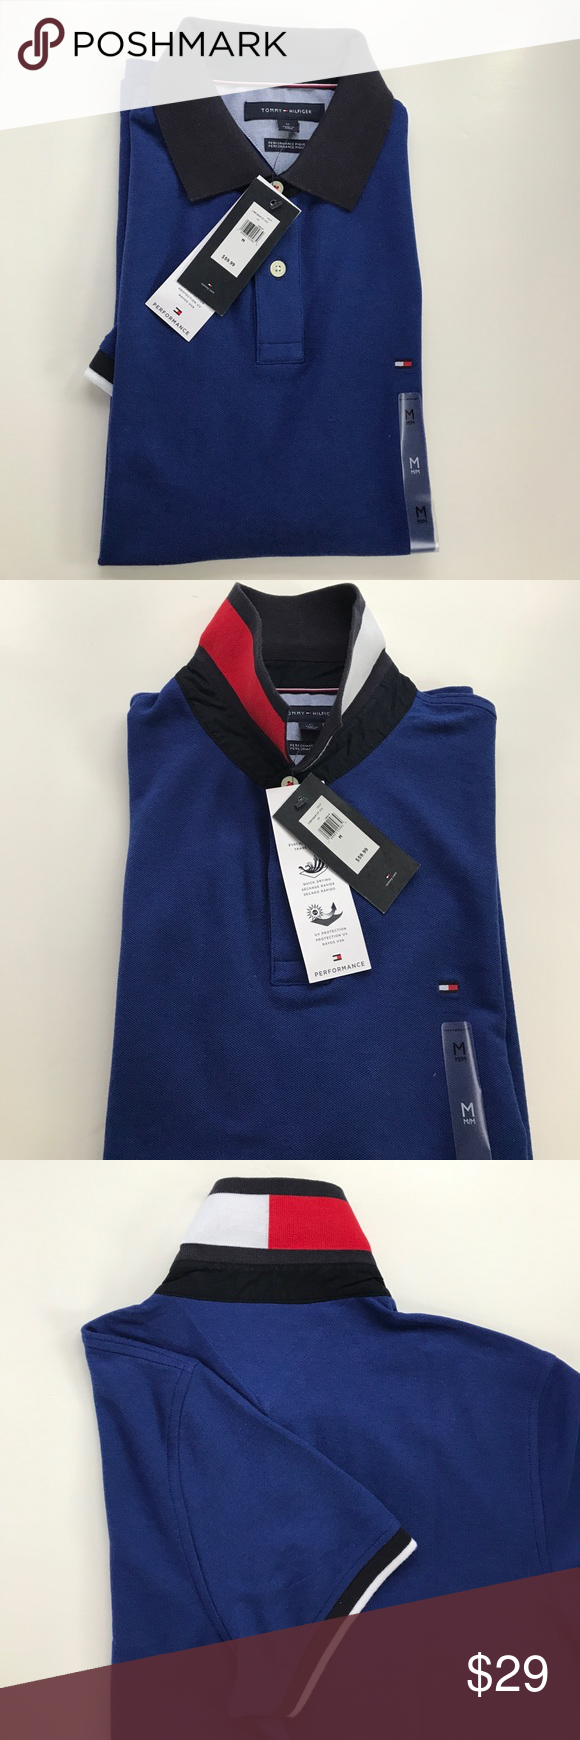 Tommy Hilfiger Polo Shirt, Medium,NWT Tommy Hilfiger Performance  Pique, Men's Polo Shirt, Medium Size,NWT Tommy Hilfiger Shirts Tees - Short Sleeve